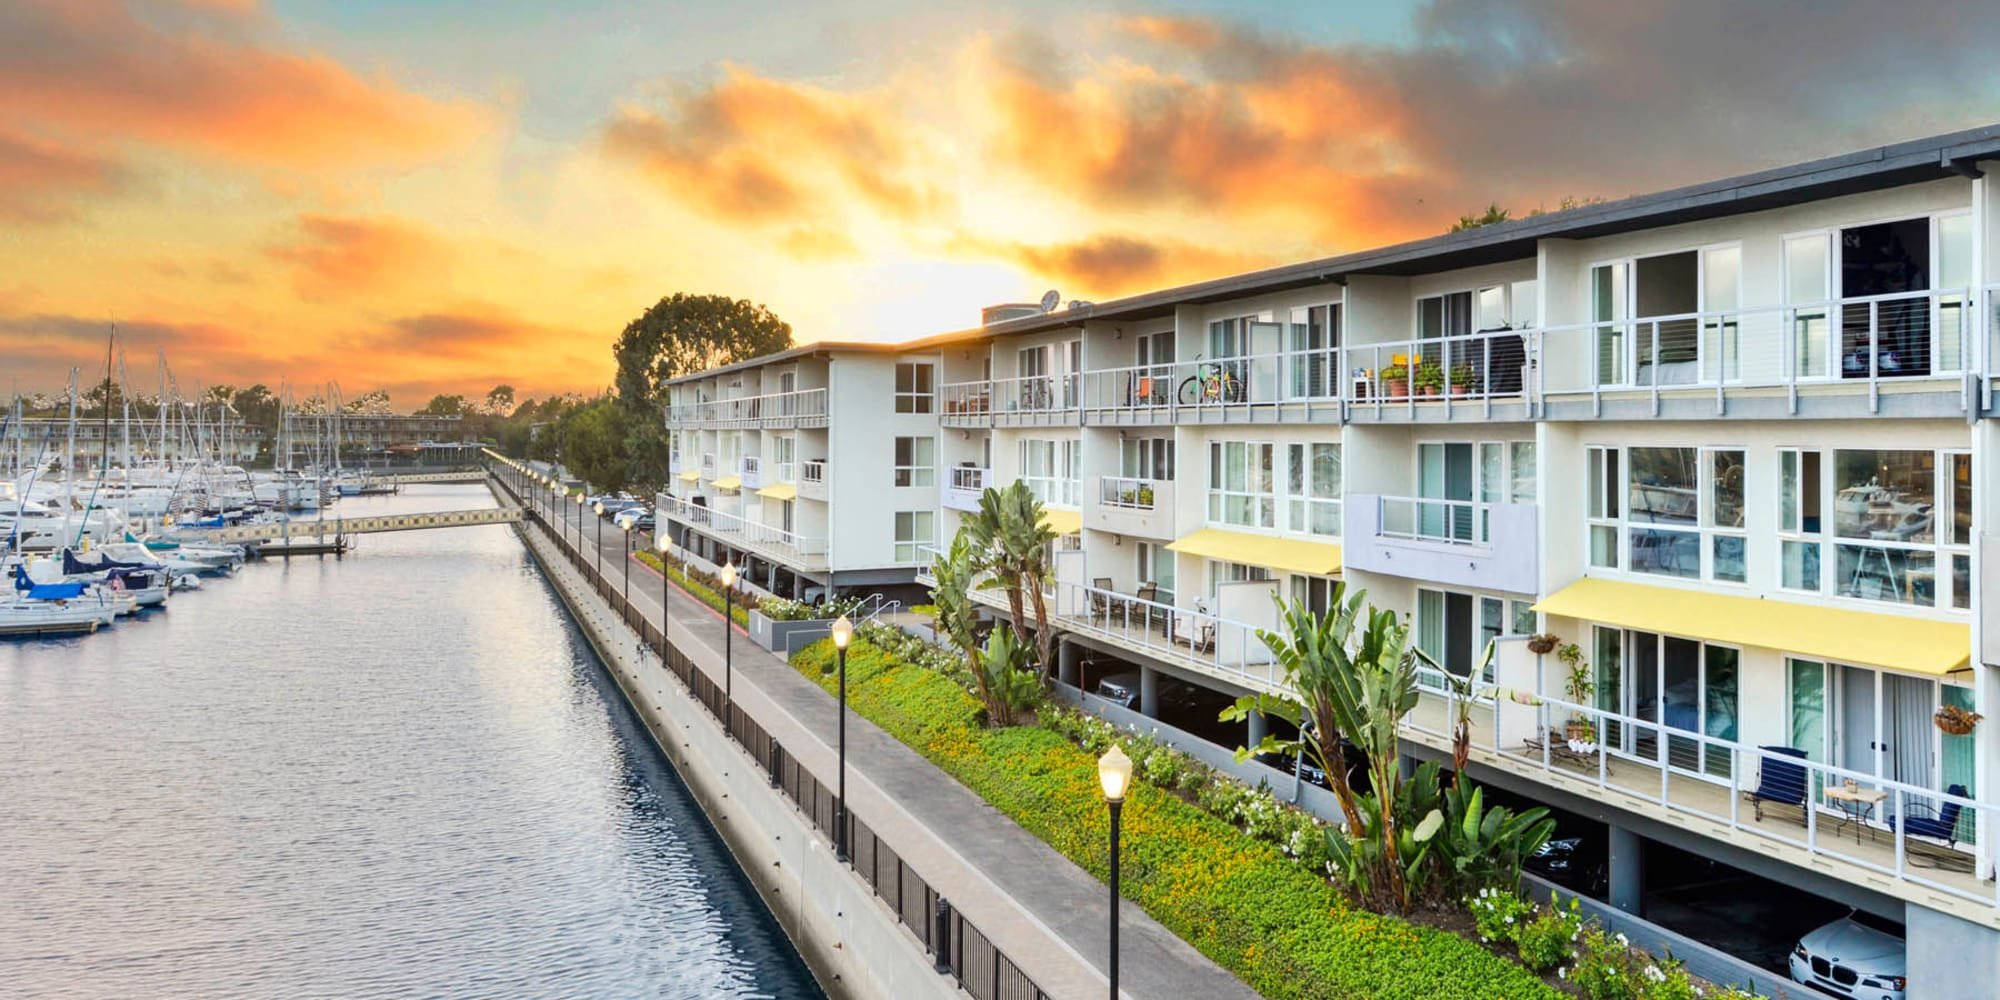 Gorgeous sunset over our waterside luxury community at The Tides at Marina Harbor in Marina Del Rey, California